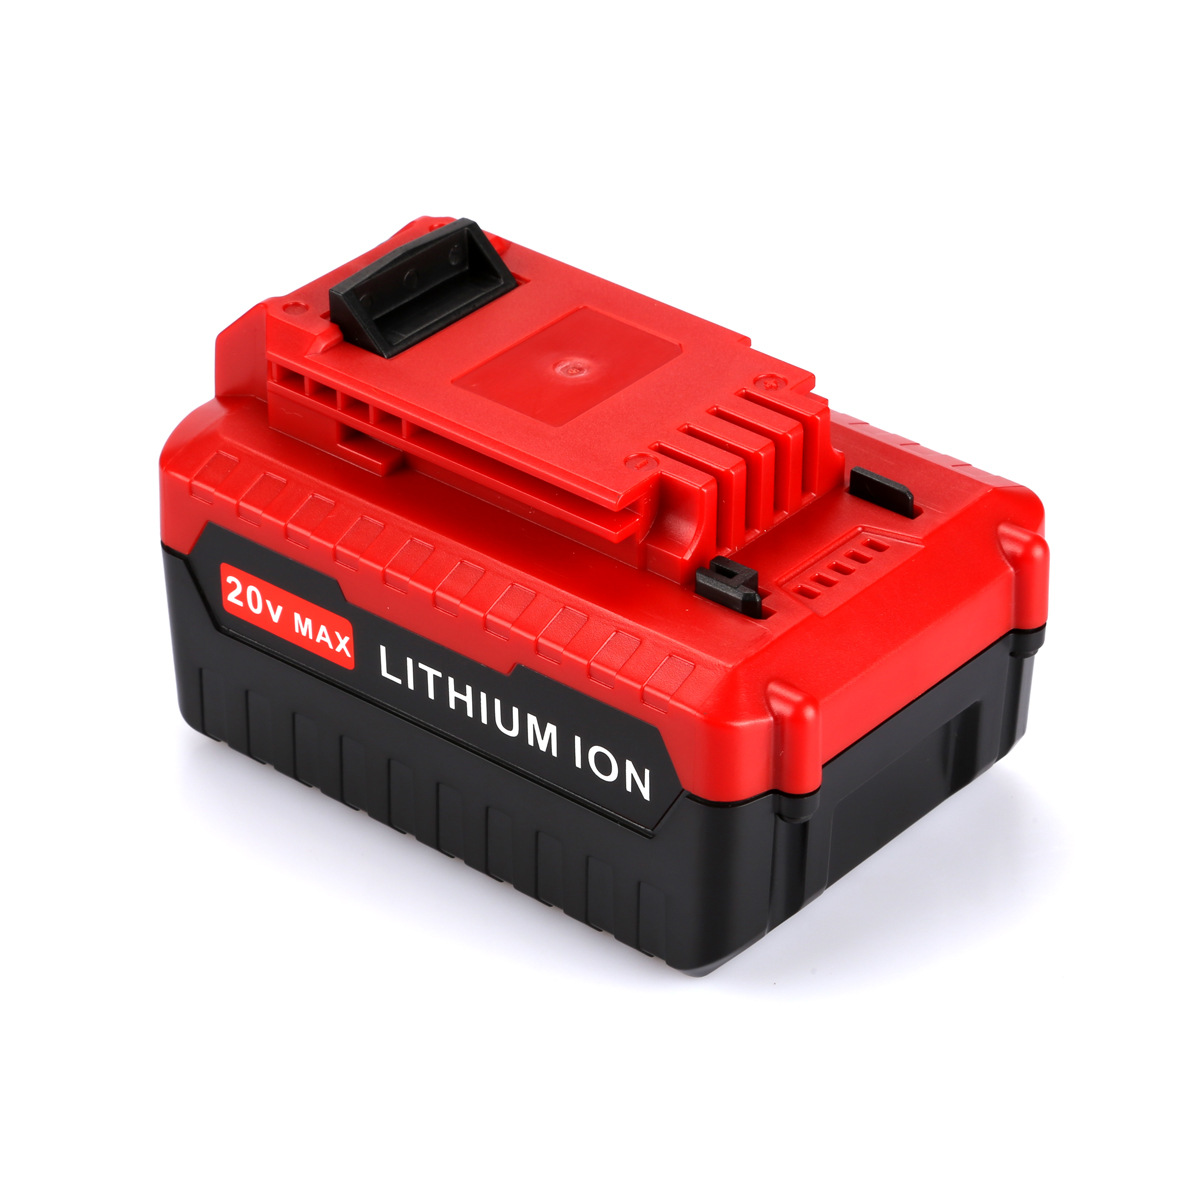 20V Li-ion Battery Replacement for Porter Cable PC18B 4000mah